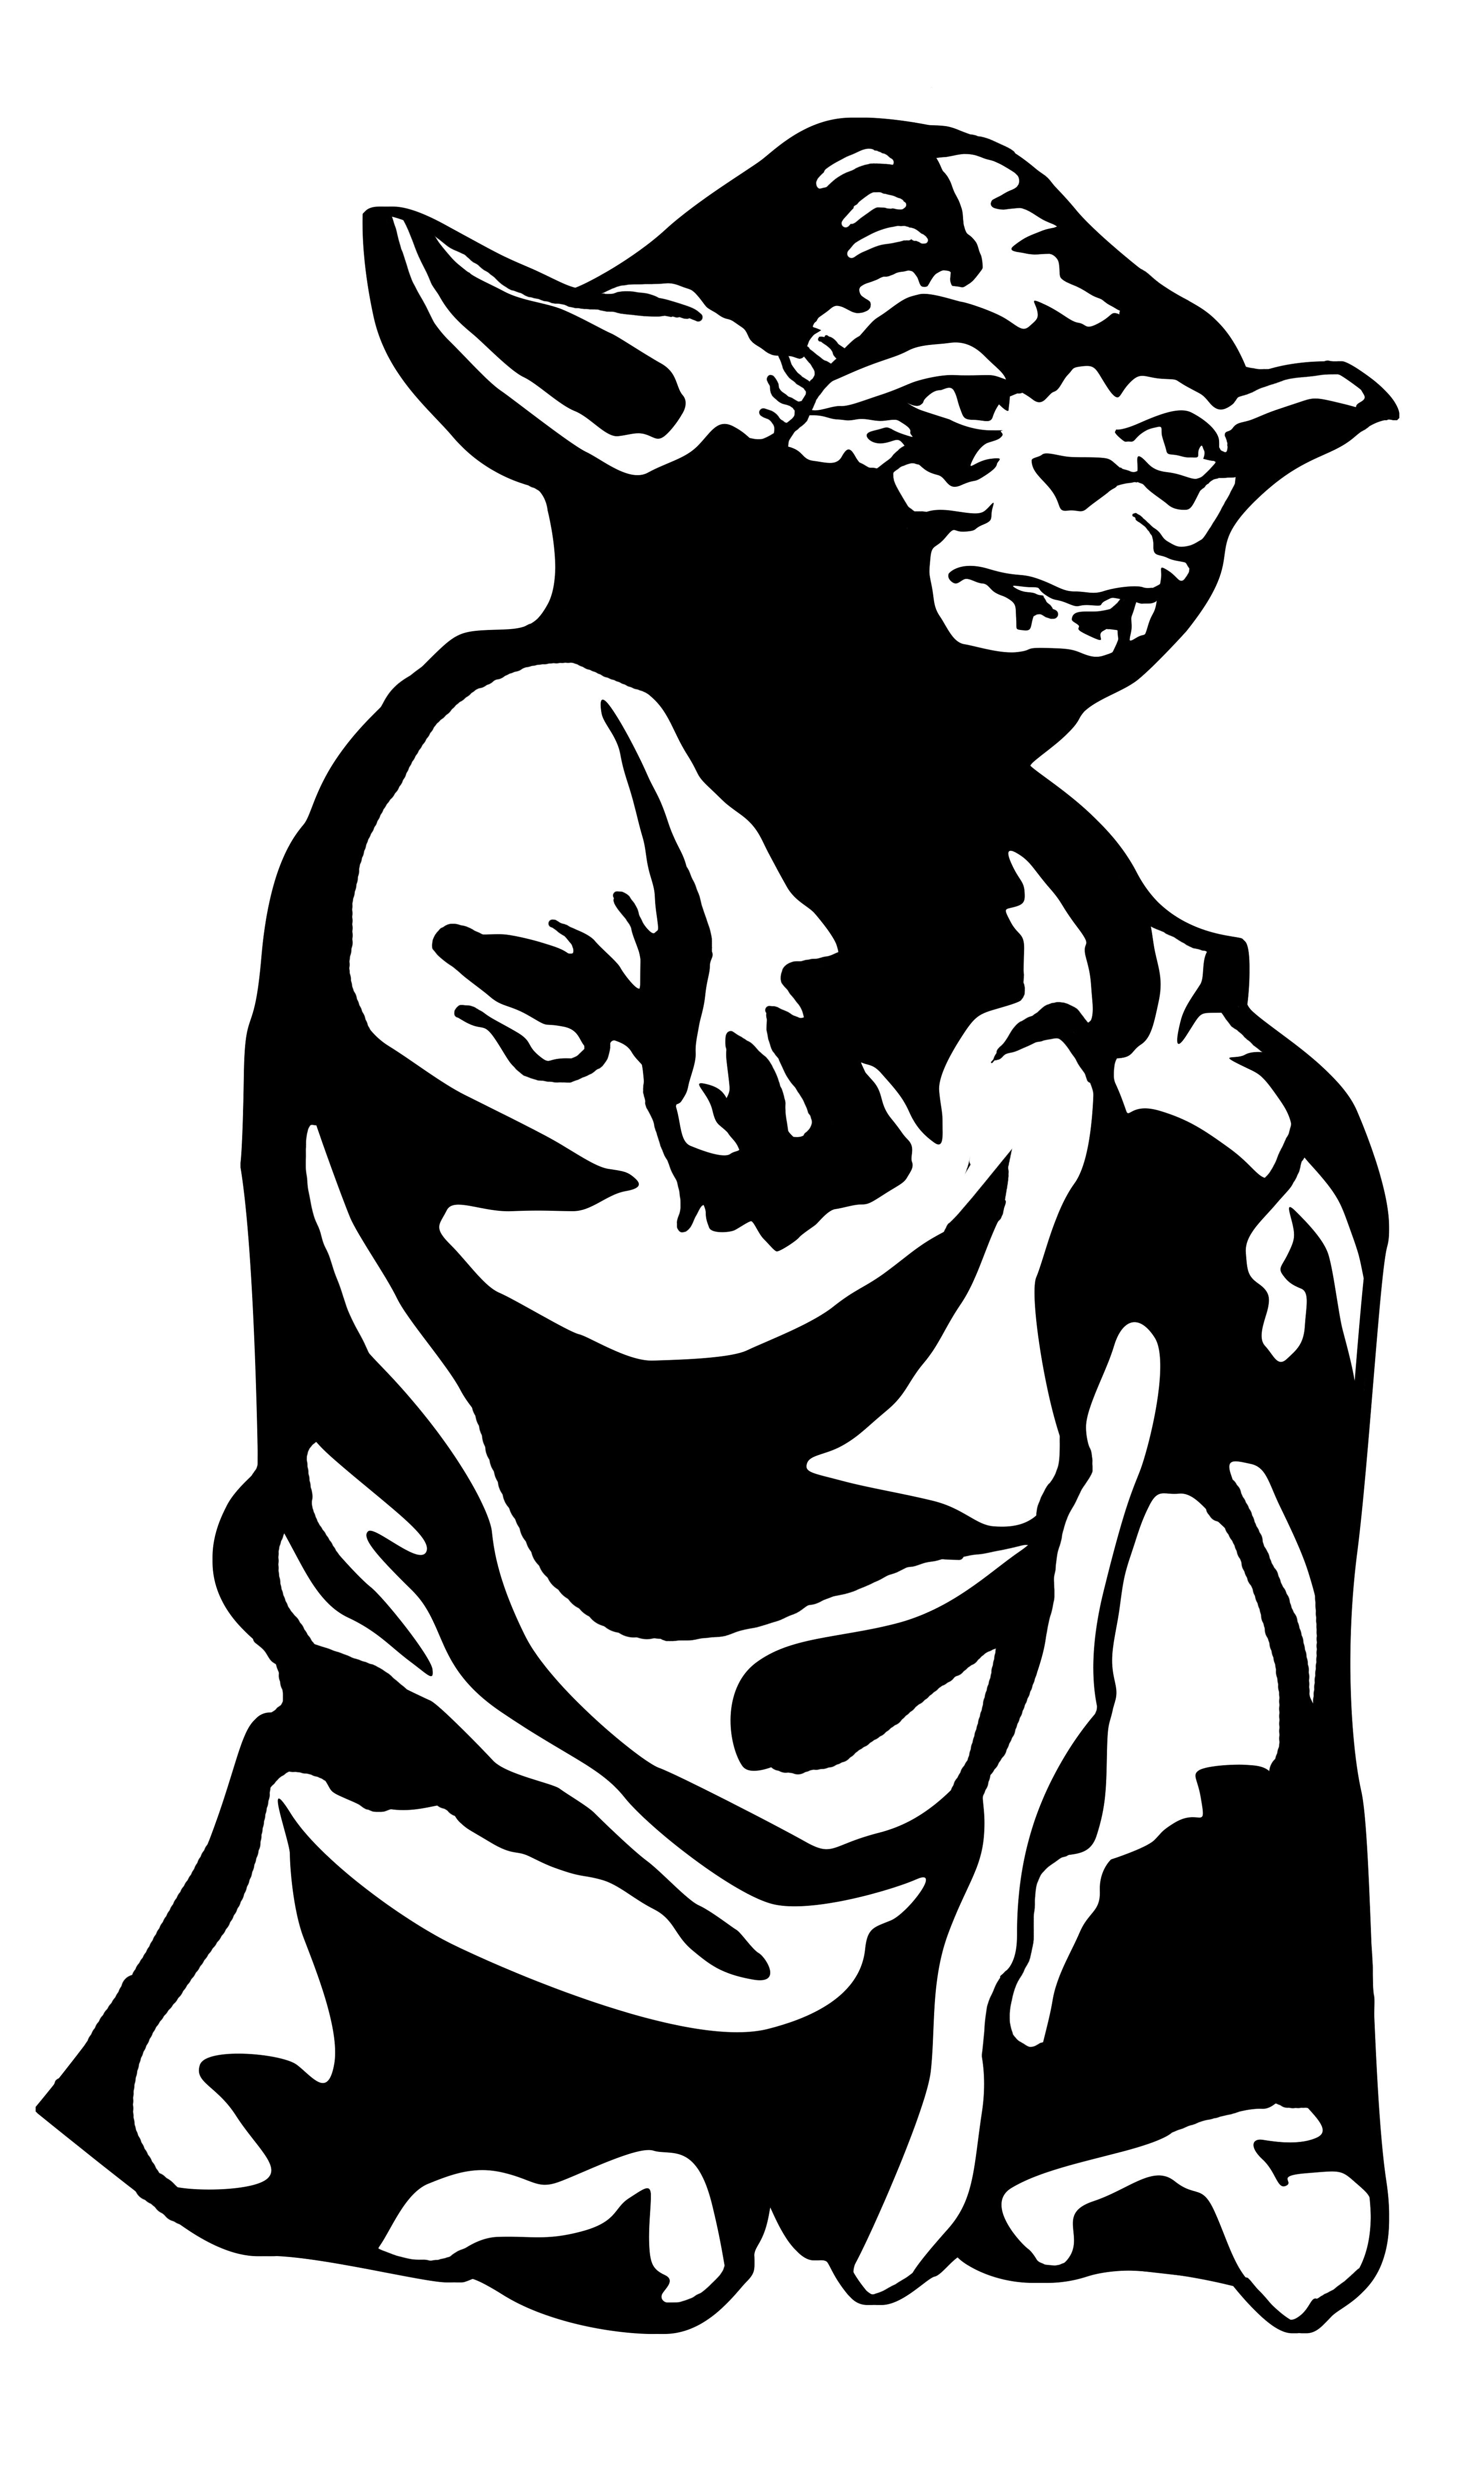 Yoda life size stencil for kids room wars of stars